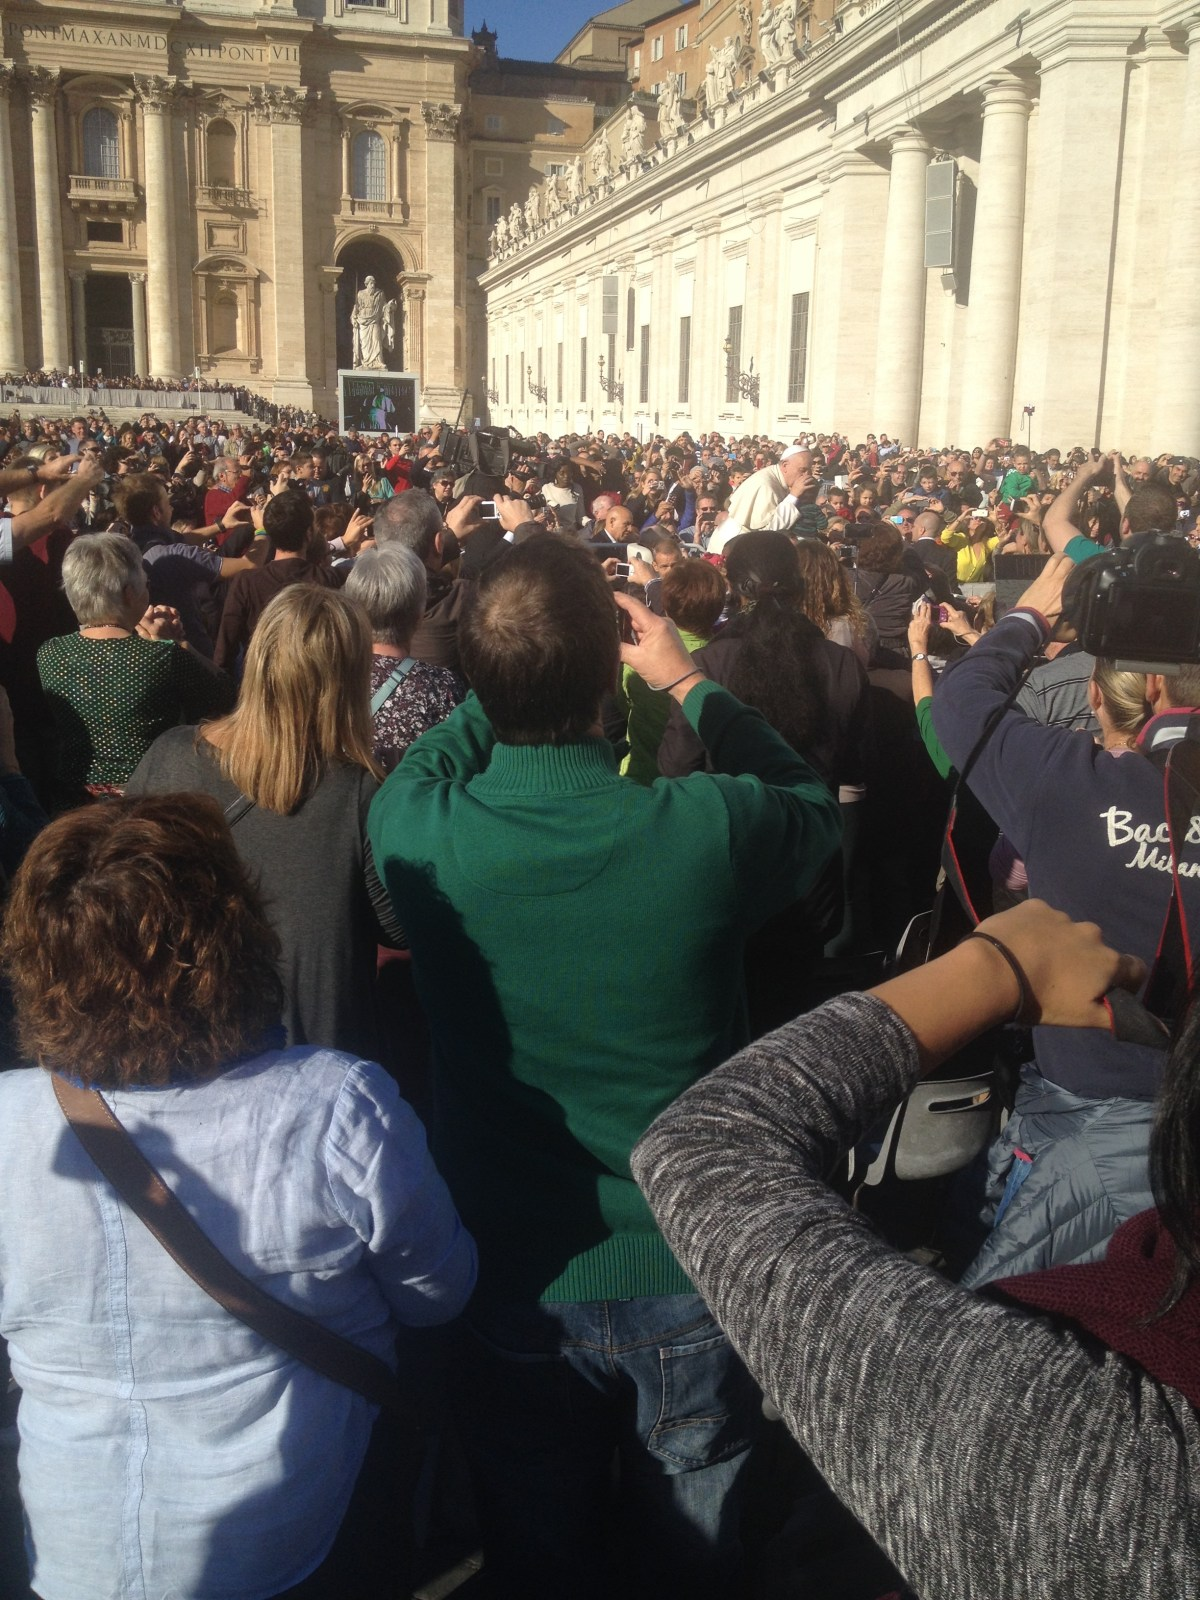 The Vatican City and the Pope at St. Peter's Square: Photo Gallery